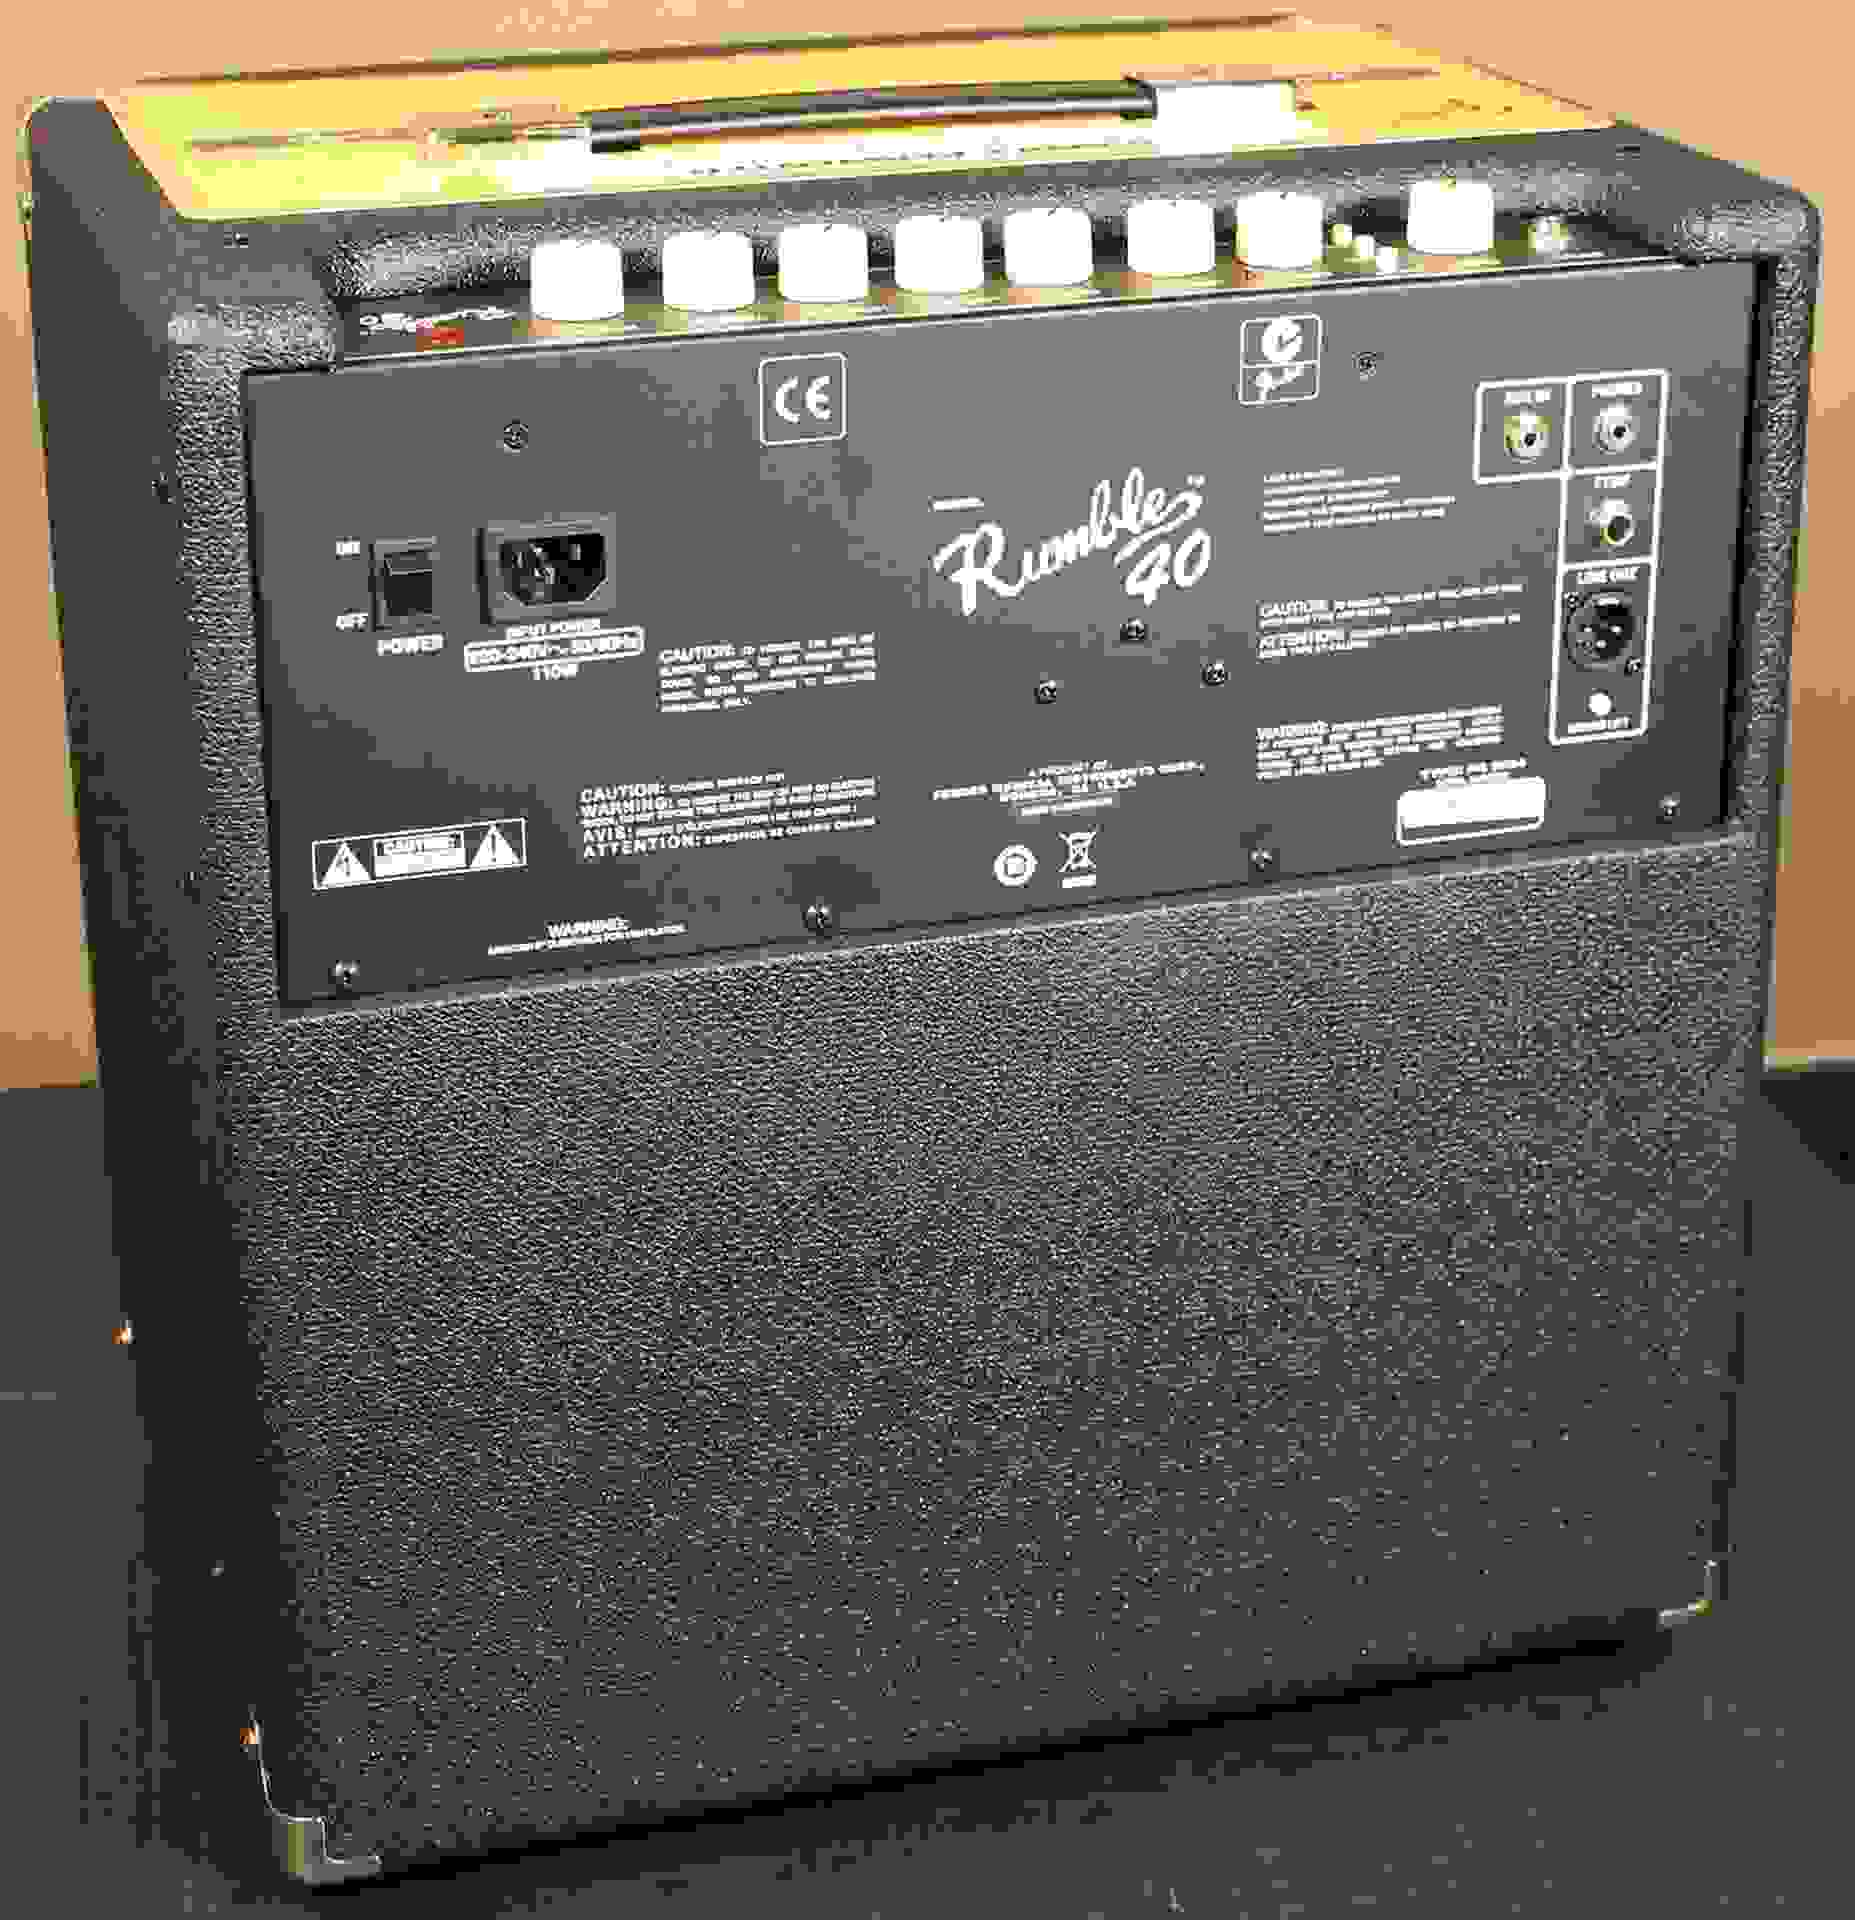 fender rumble 40 back.JPG